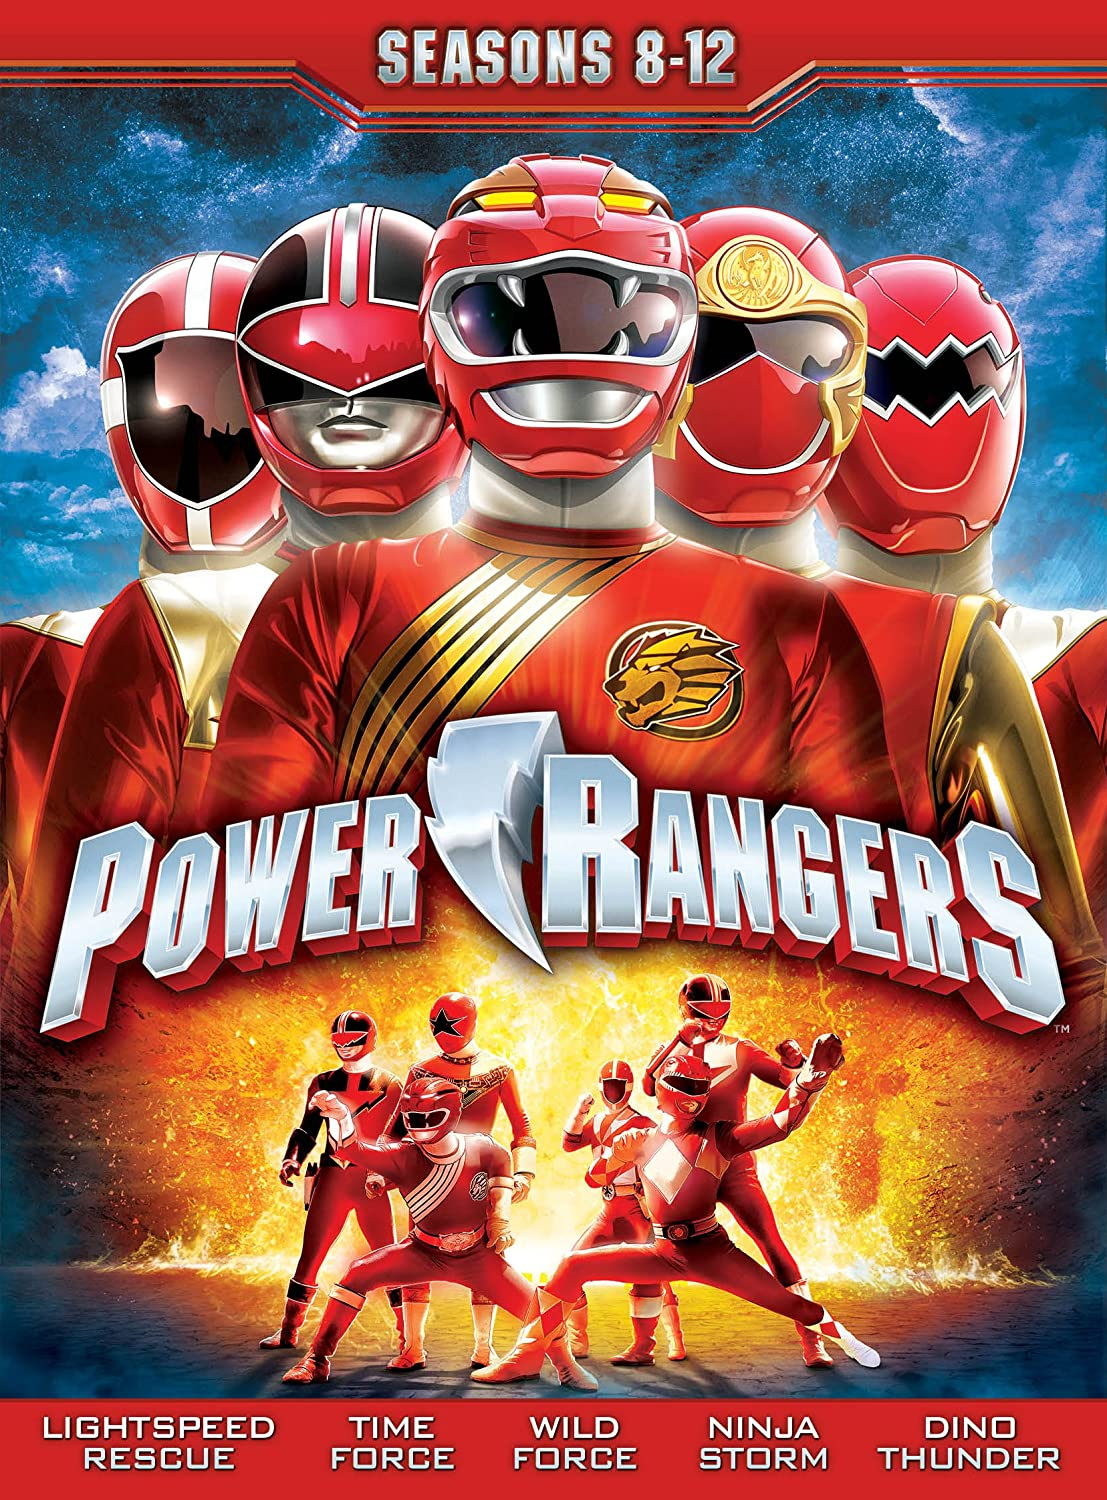 Amazon.com: Power Rangers: Seasons Eight - Twelve: Tracy ...